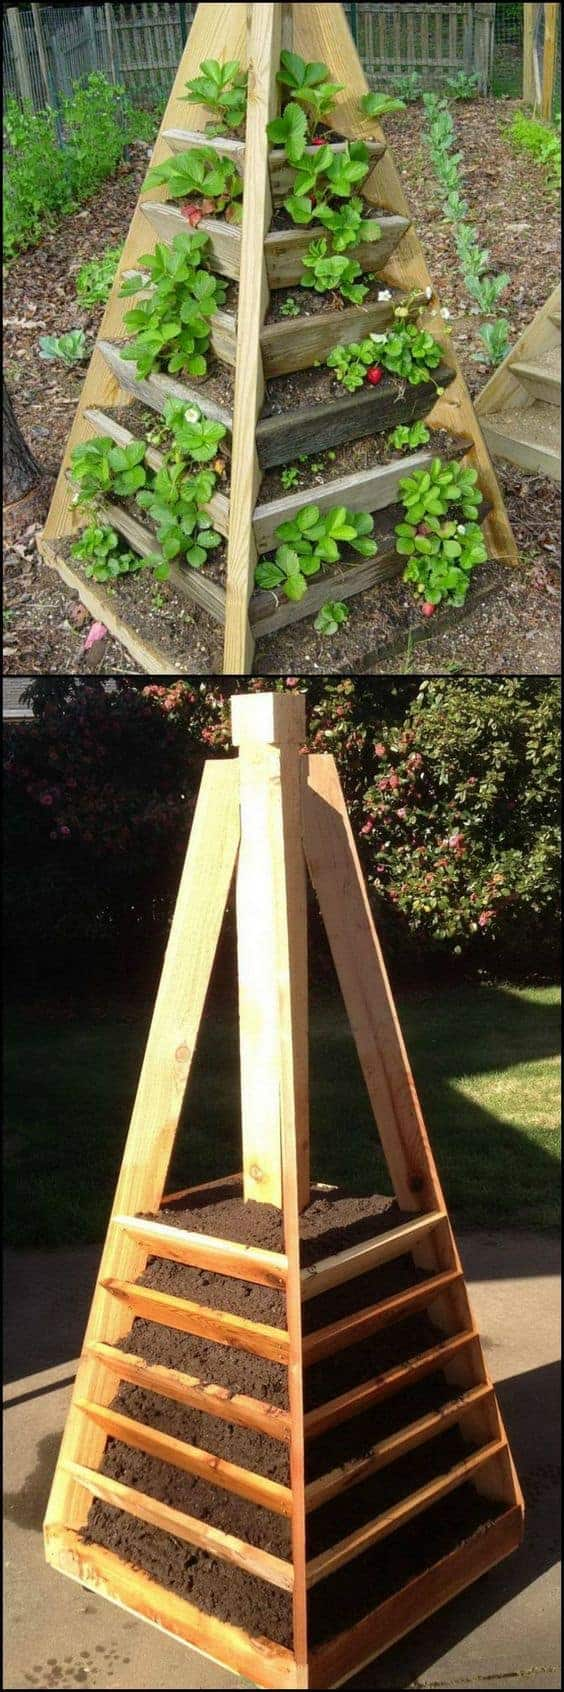 Build a strawberry tower